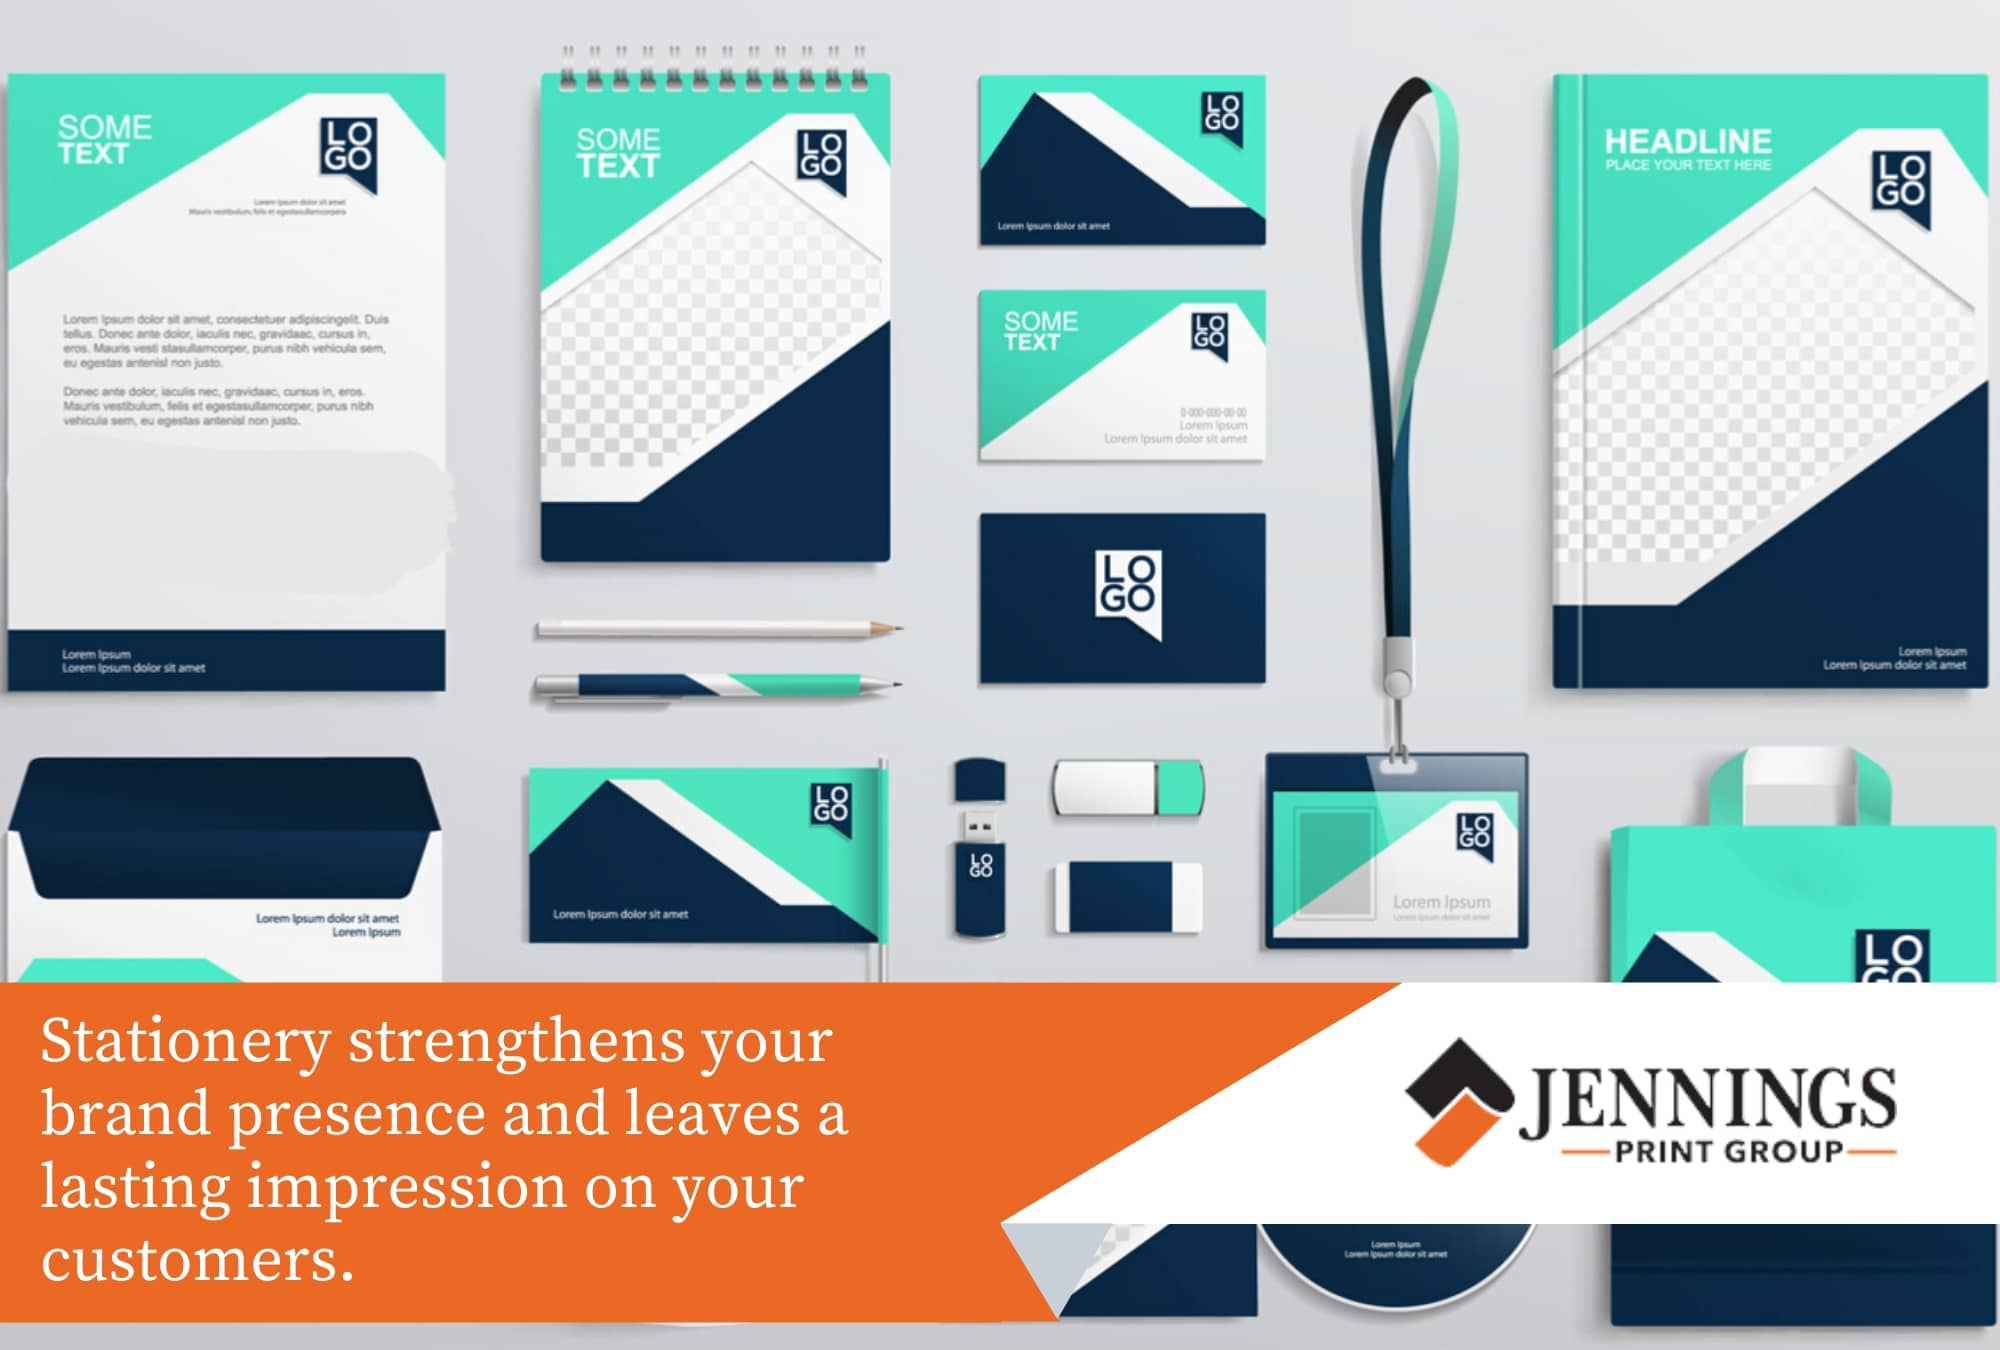 stationery strengthens your brand presence